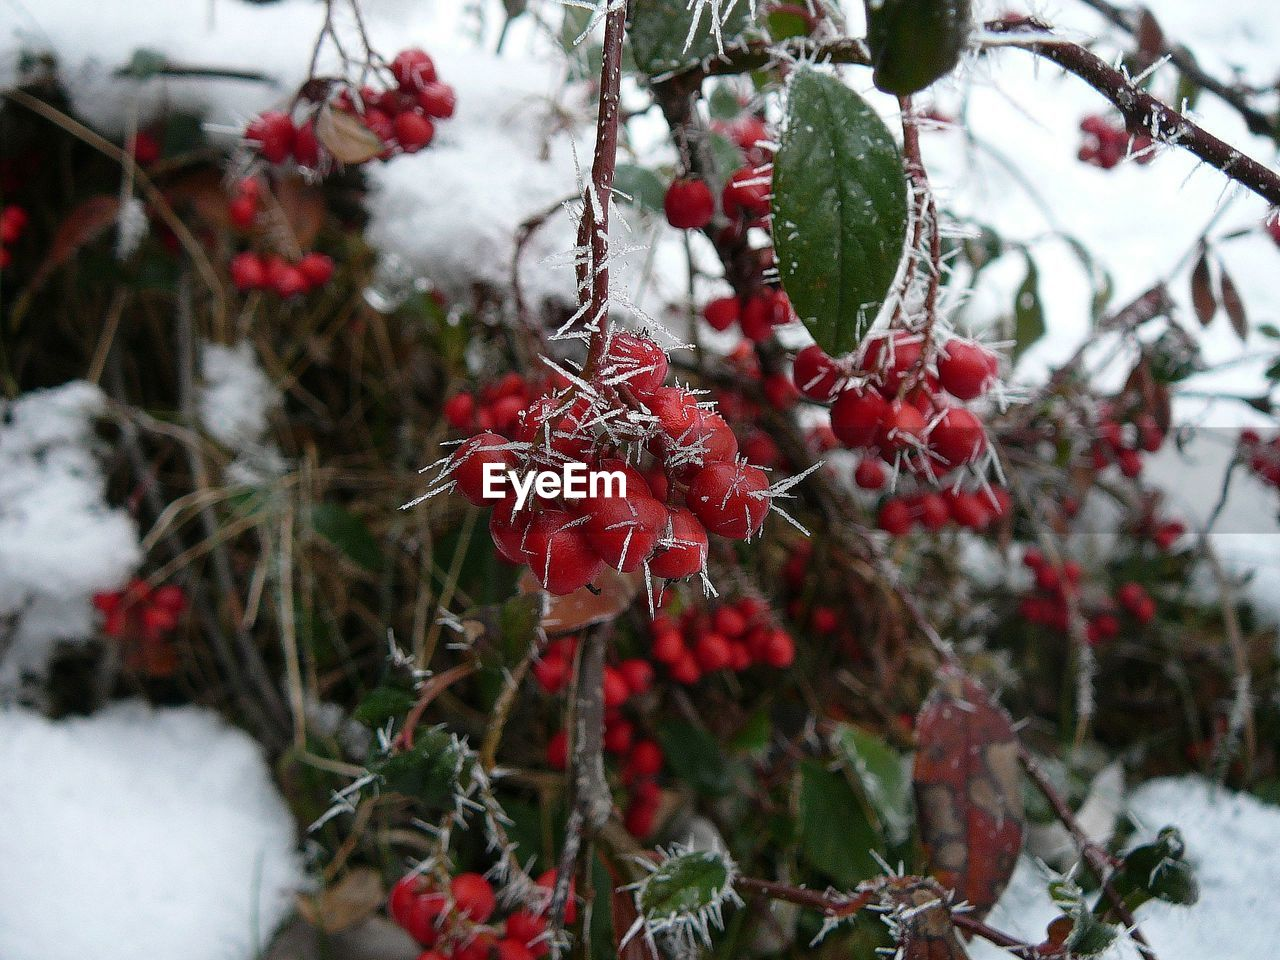 cold temperature, winter, snow, red, growth, focus on foreground, beauty in nature, food, nature, freshness, day, no people, close-up, frozen, plant, fruit, berry fruit, food and drink, healthy eating, outdoors, ice, rowanberry